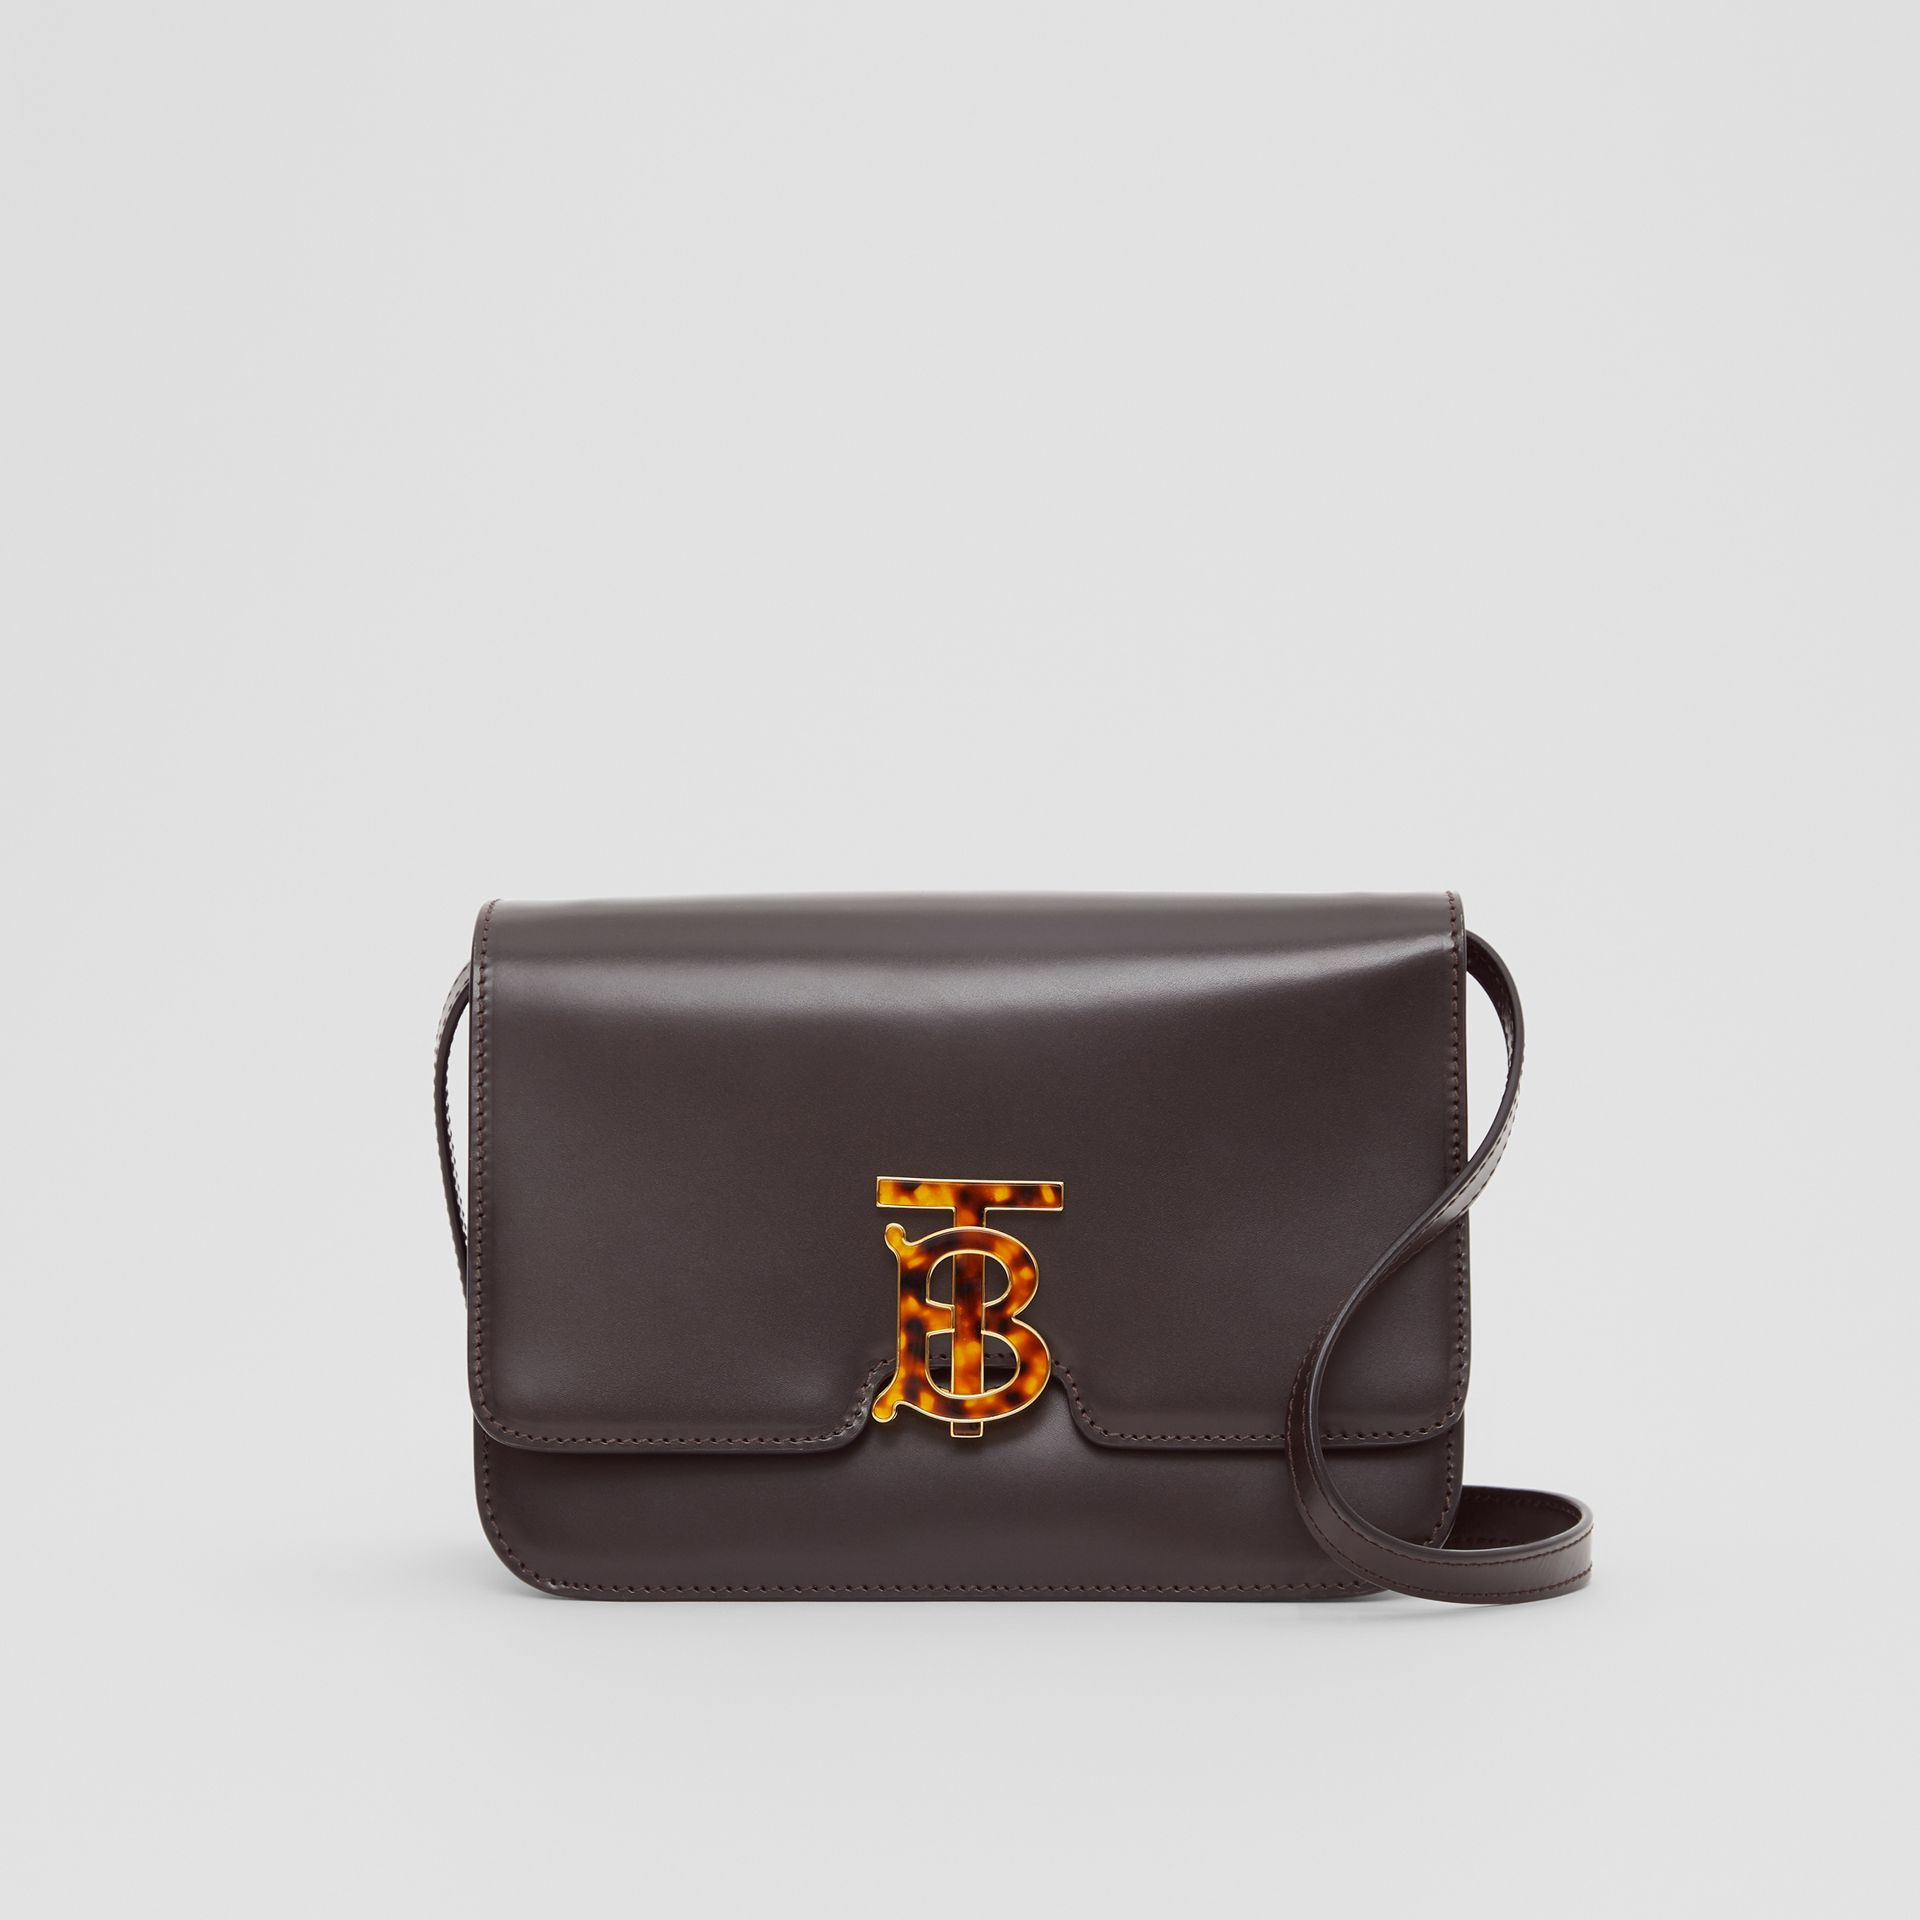 Small Leather TB Bag in Coffee - Women | Burberry - gallery image 0